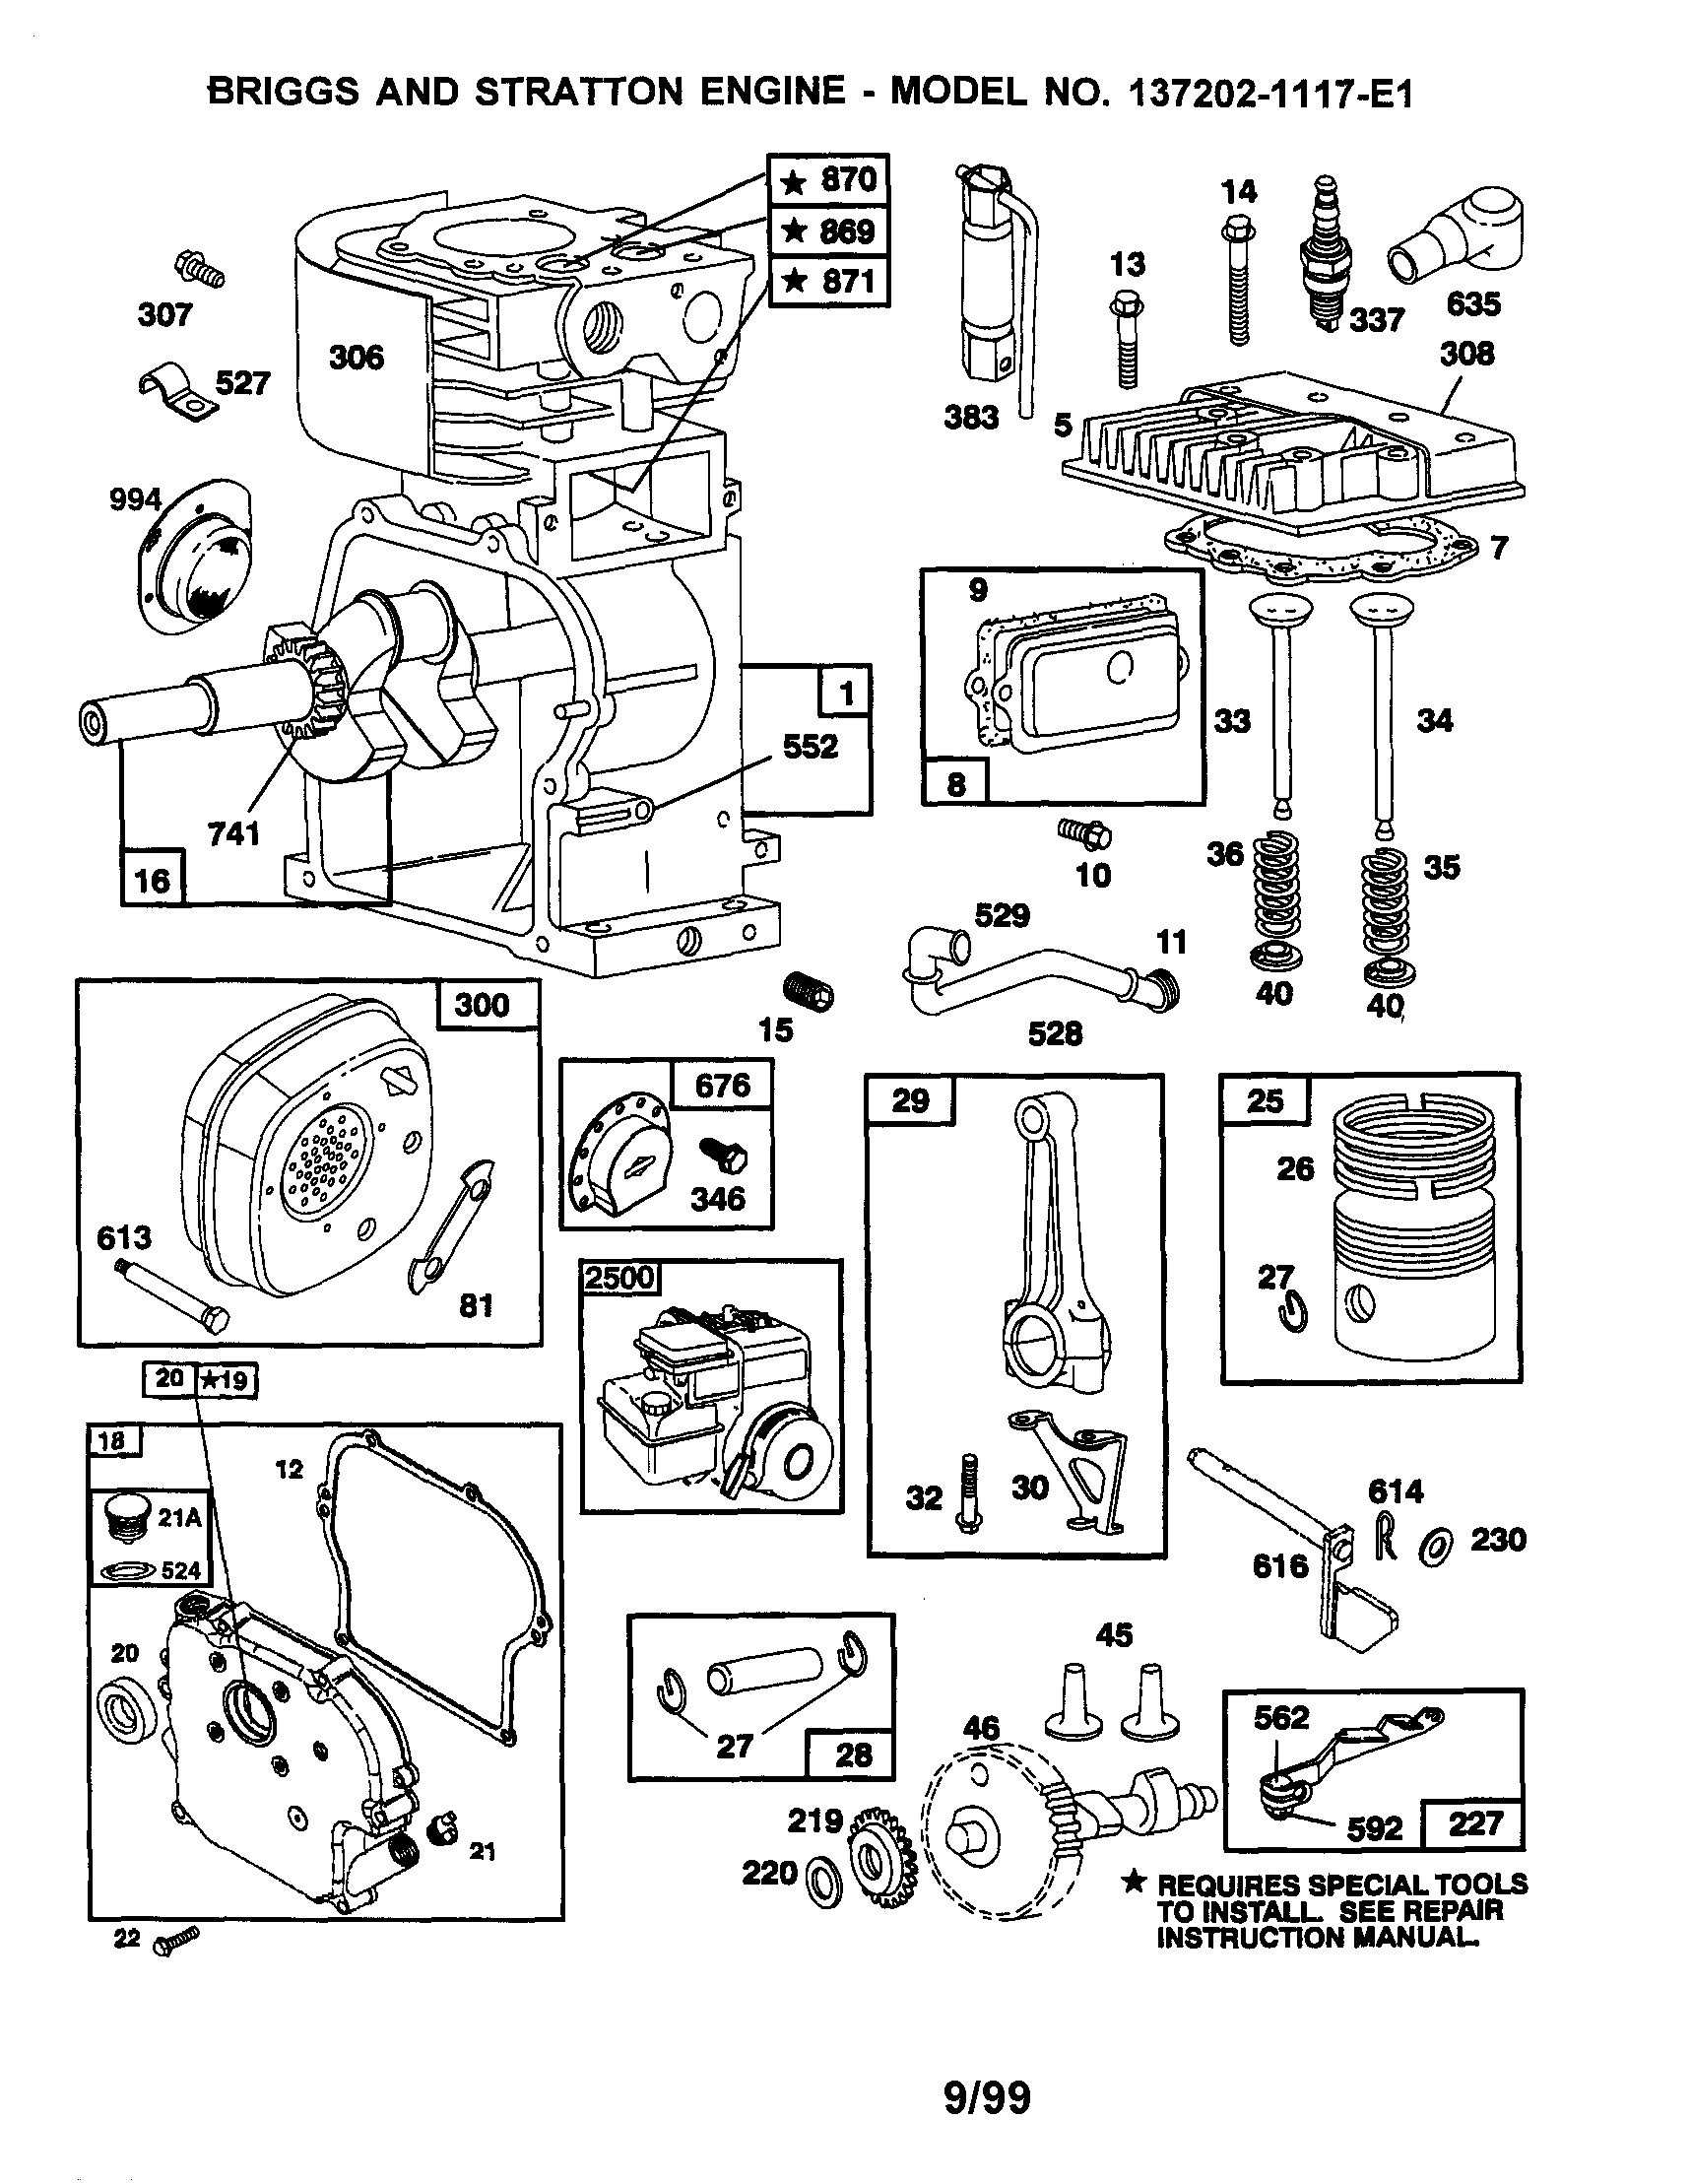 Intek Briggs And Stratton Wiring Diagram Wiring Diagram